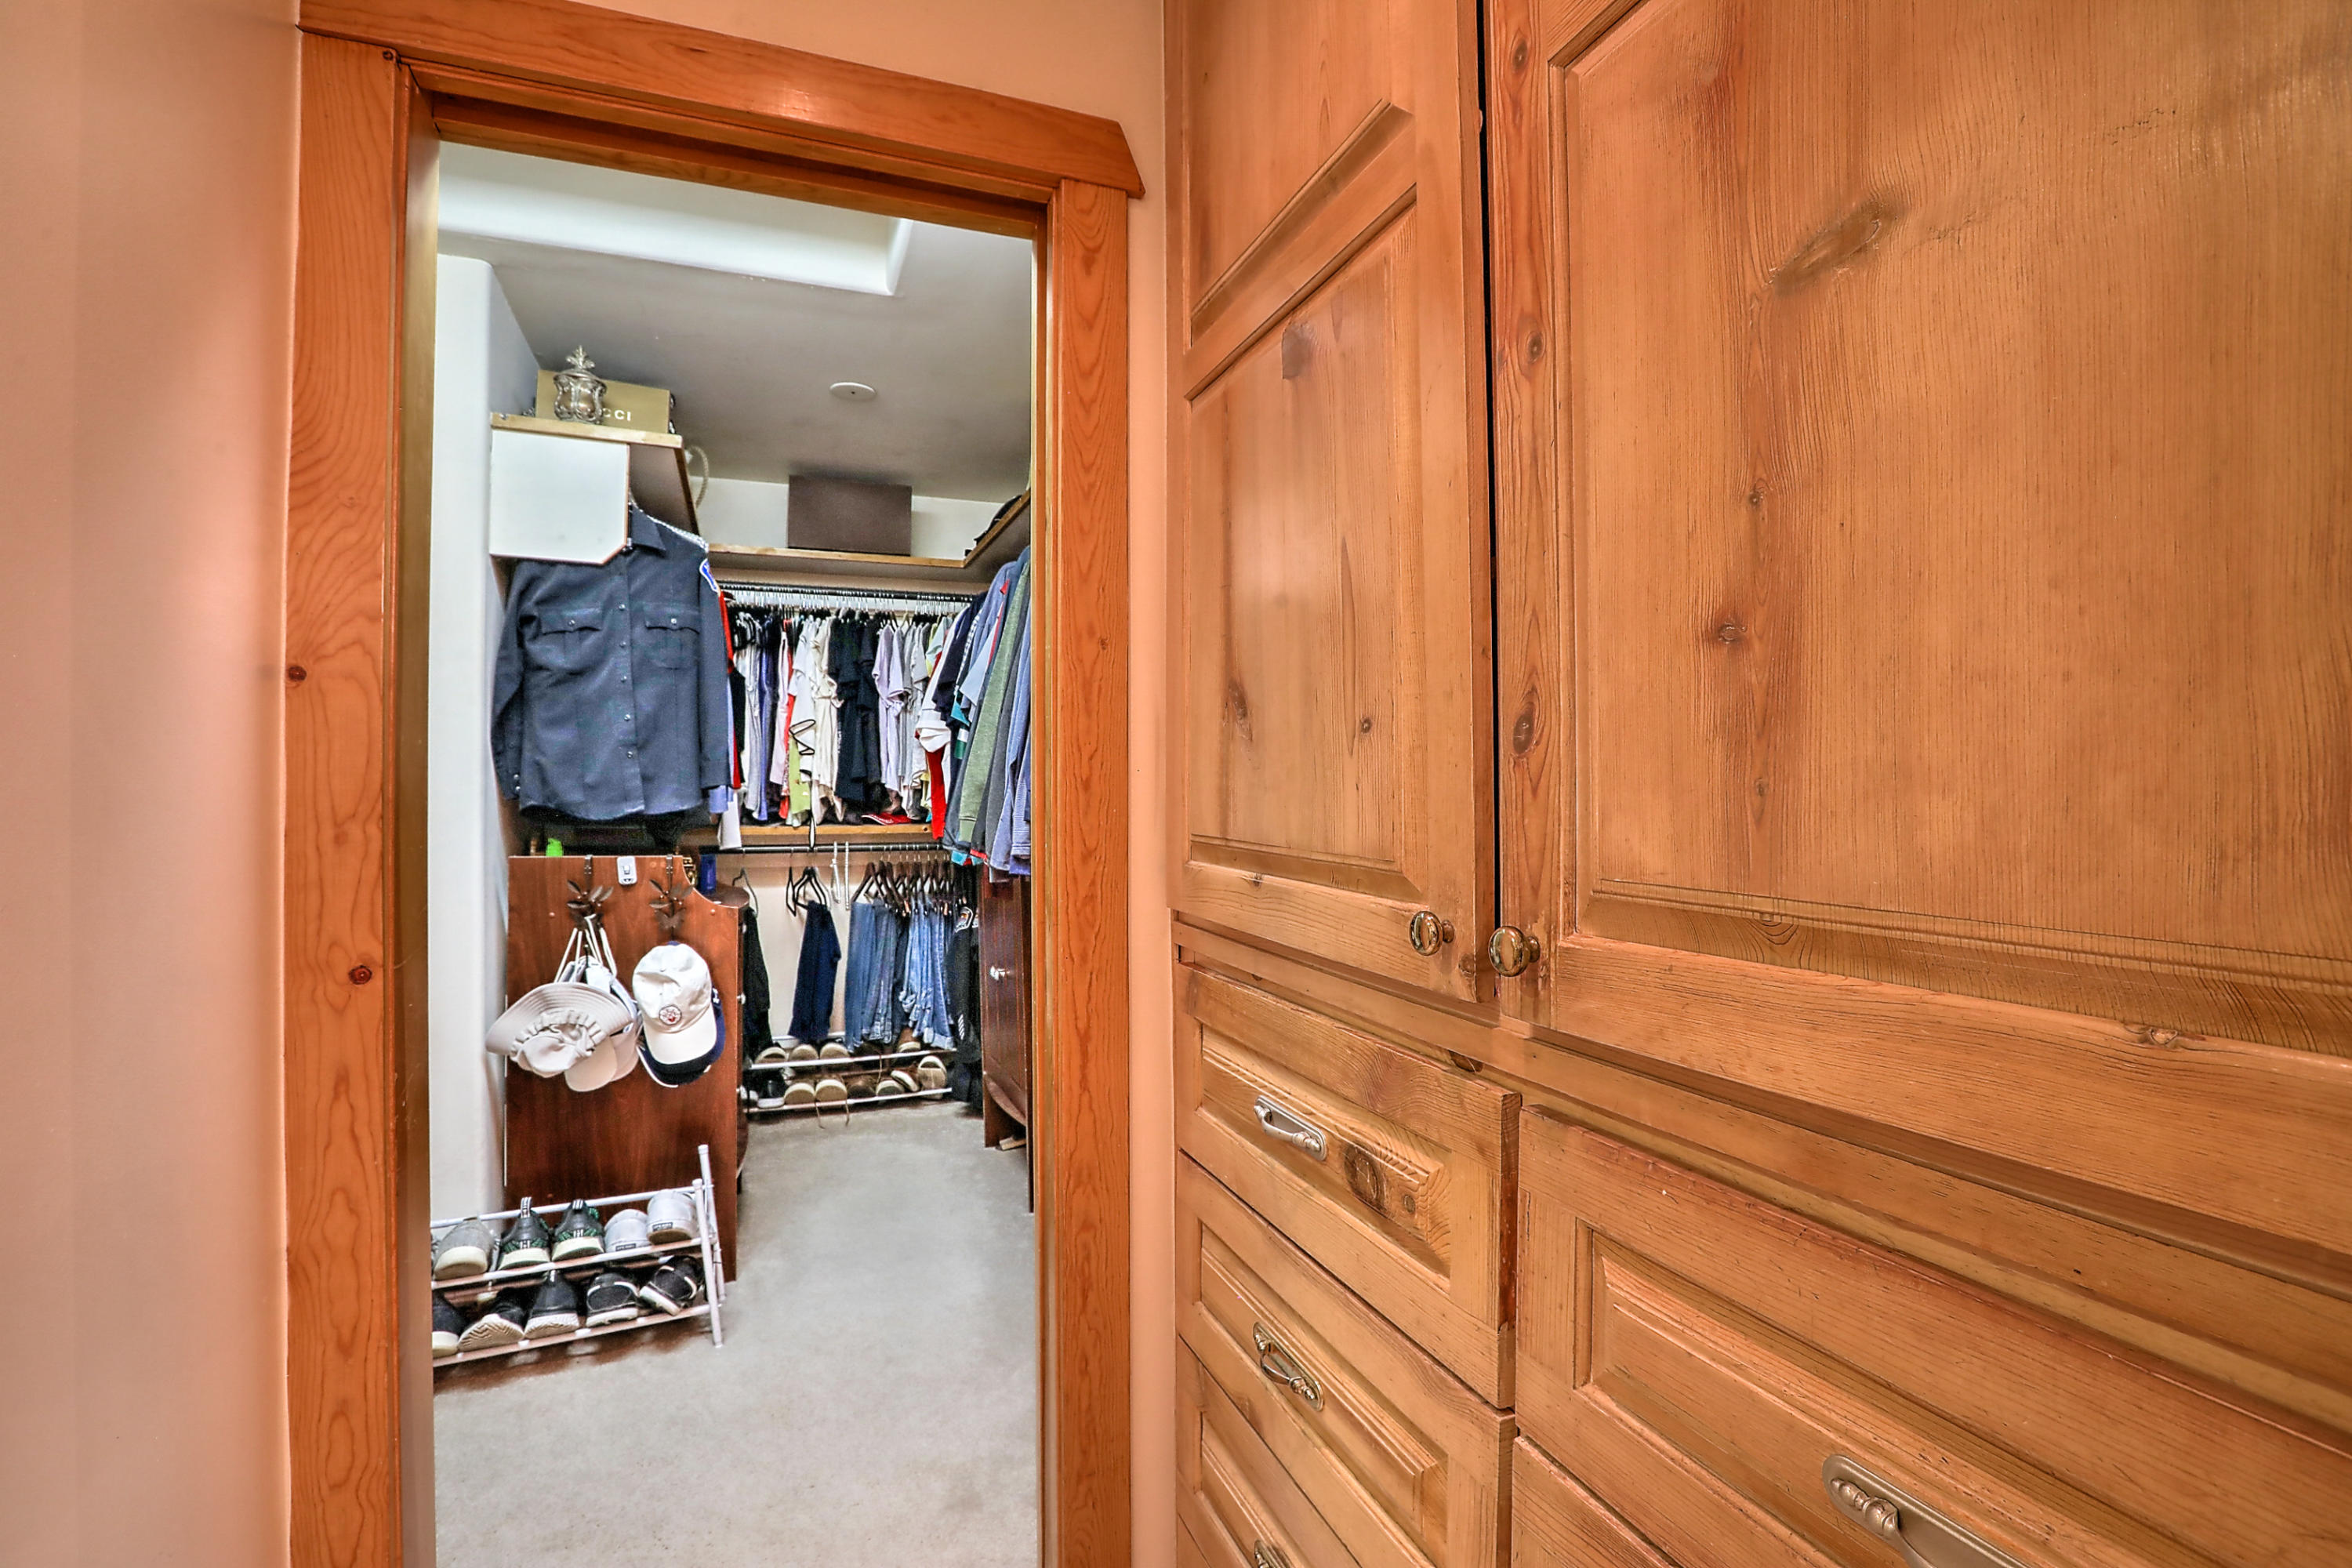 Elegant North Valley Southwestern Pueblo style home with 4 bedrooms plus office, 3 bath, 3 car garage near Rio Grande Blvd. and Alameda  tucked away in Rio Grande Estates. You'll find an oversized one plus acre lot with plenty of room to play or for a new owner to add a swimming pool. Beautiful design with architectural features galore. Adobe accents with latilla ceiling treatment, saltillo flooring and wood beams and corbels.  Two custom kiva fireplaces and traditional tile throughout. Upstairs private balconies let you enjoy the views of Sandia Mountains. Beautiful views from the east facing home, and sunset views from the backyard patio. A separate smaller courtyard separates the outdoor living area from the larger backyard.